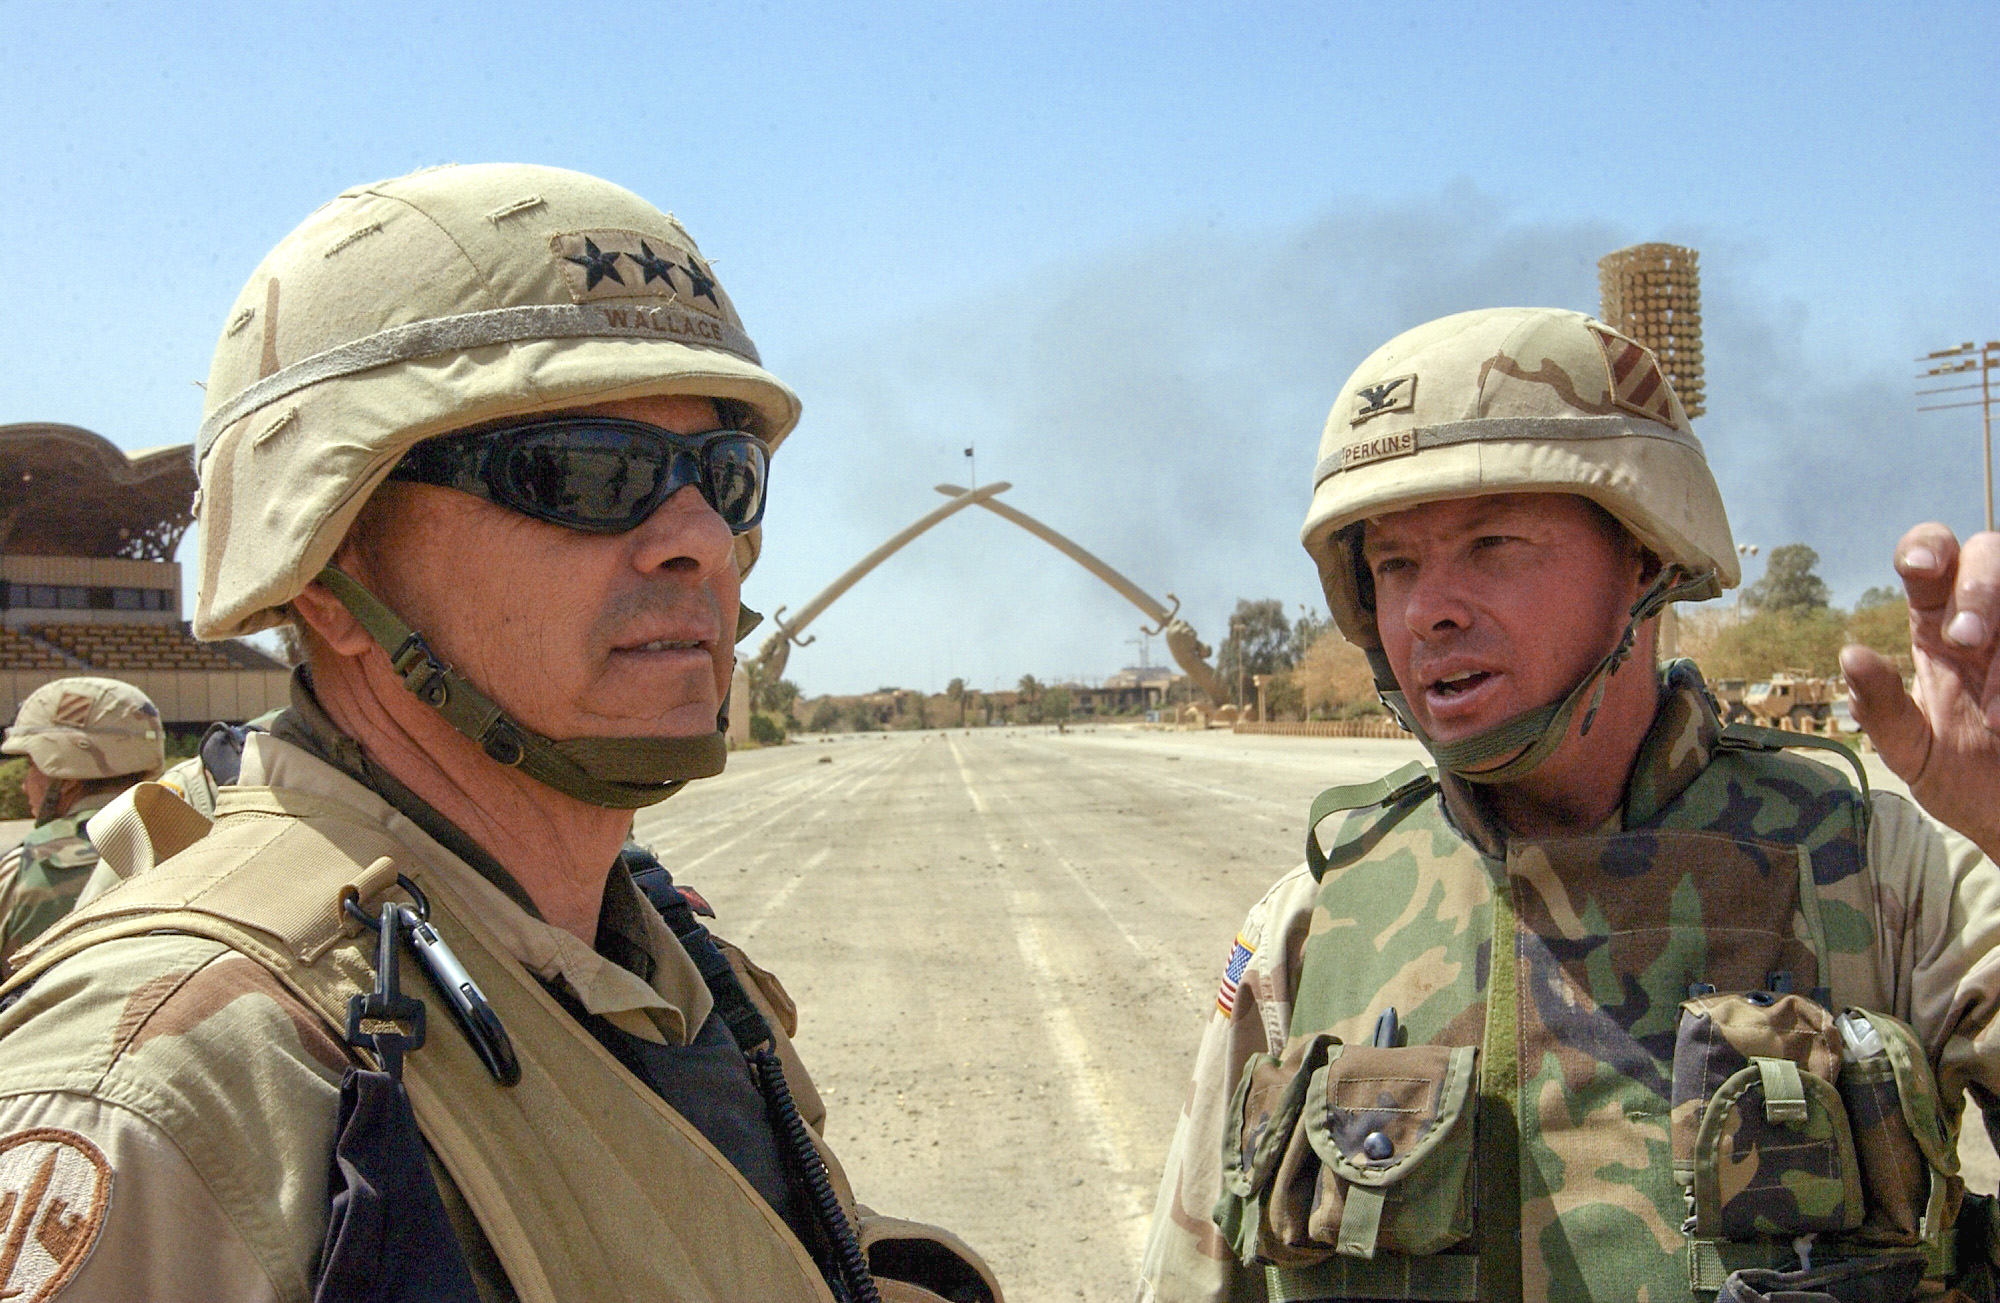 Col. David Perkins consults with the Corps Commander, Lt. Gen. Wallace, in Baghdad on Day 22 during the initial phases of Operation Iraqi Freedom. (Army)